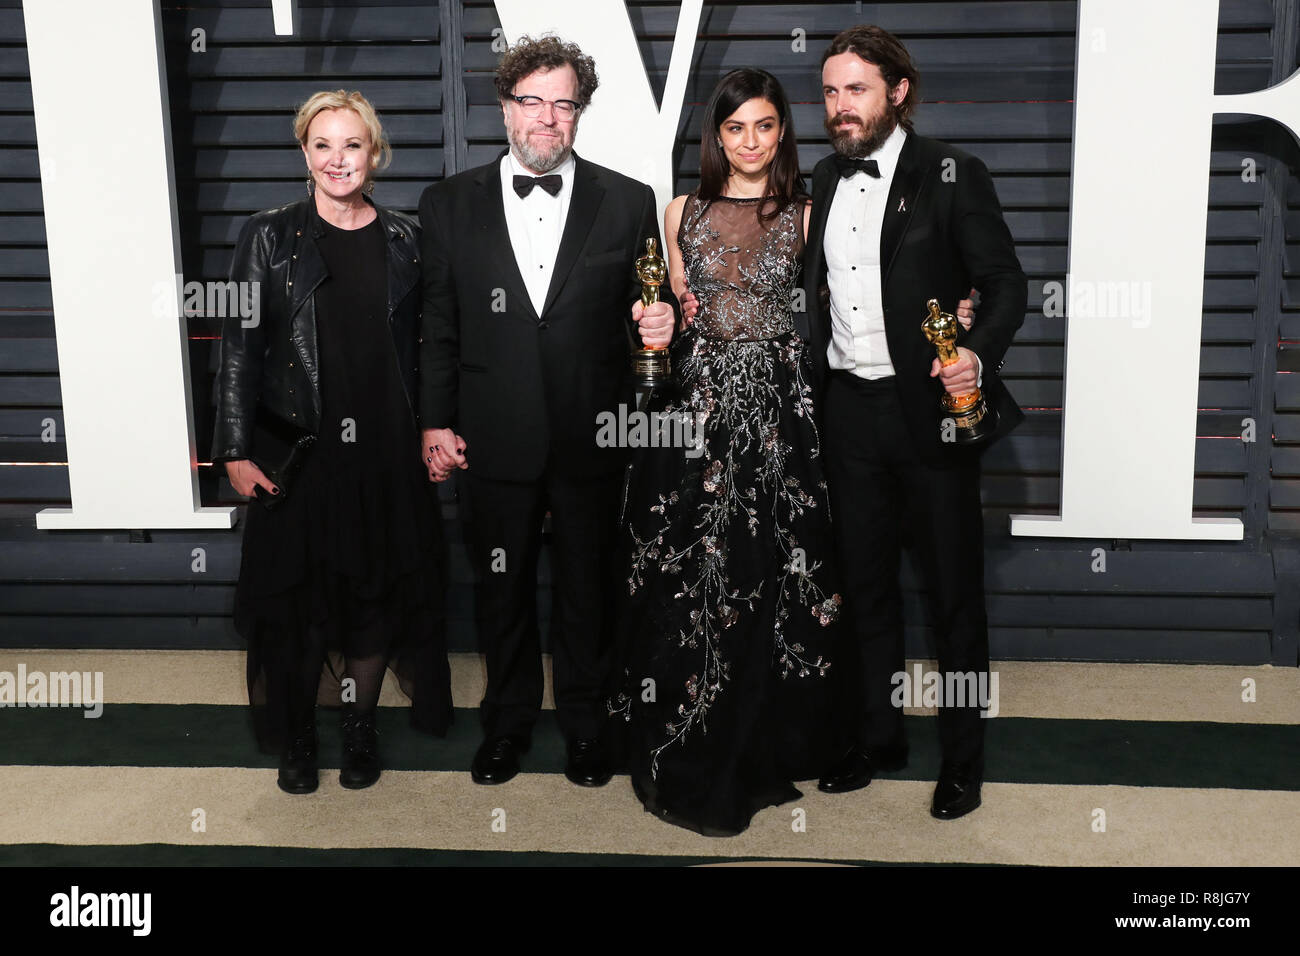 BEVERLY HILLS, LOS ANGELES, CA, USA - FEBRUARY 26: J. Smith-Cameron, Kenneth Lonergan, Floriana Lima, Casey Affleck arrives at the 2017 Vanity Fair Oscar Party held at the Wallis Annenberg Center for the Performing Arts on February 26, 2017 in Beverly Hills, Los Angeles, California, United States. (Photo by Xavier Collin/Image Press Agency) - Stock Image